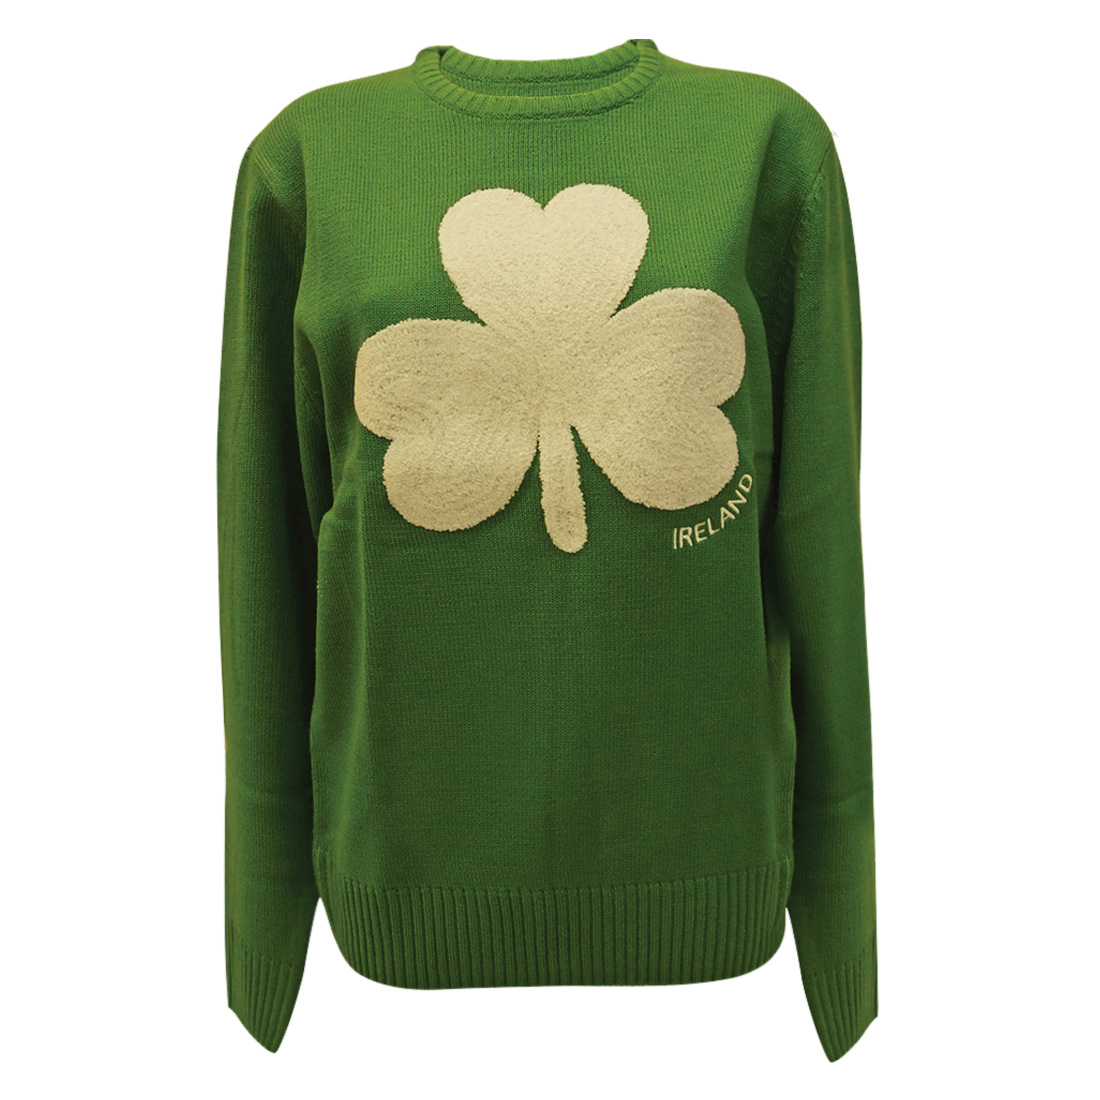 Adult Green Ireland Sweater Dublin Gift Co